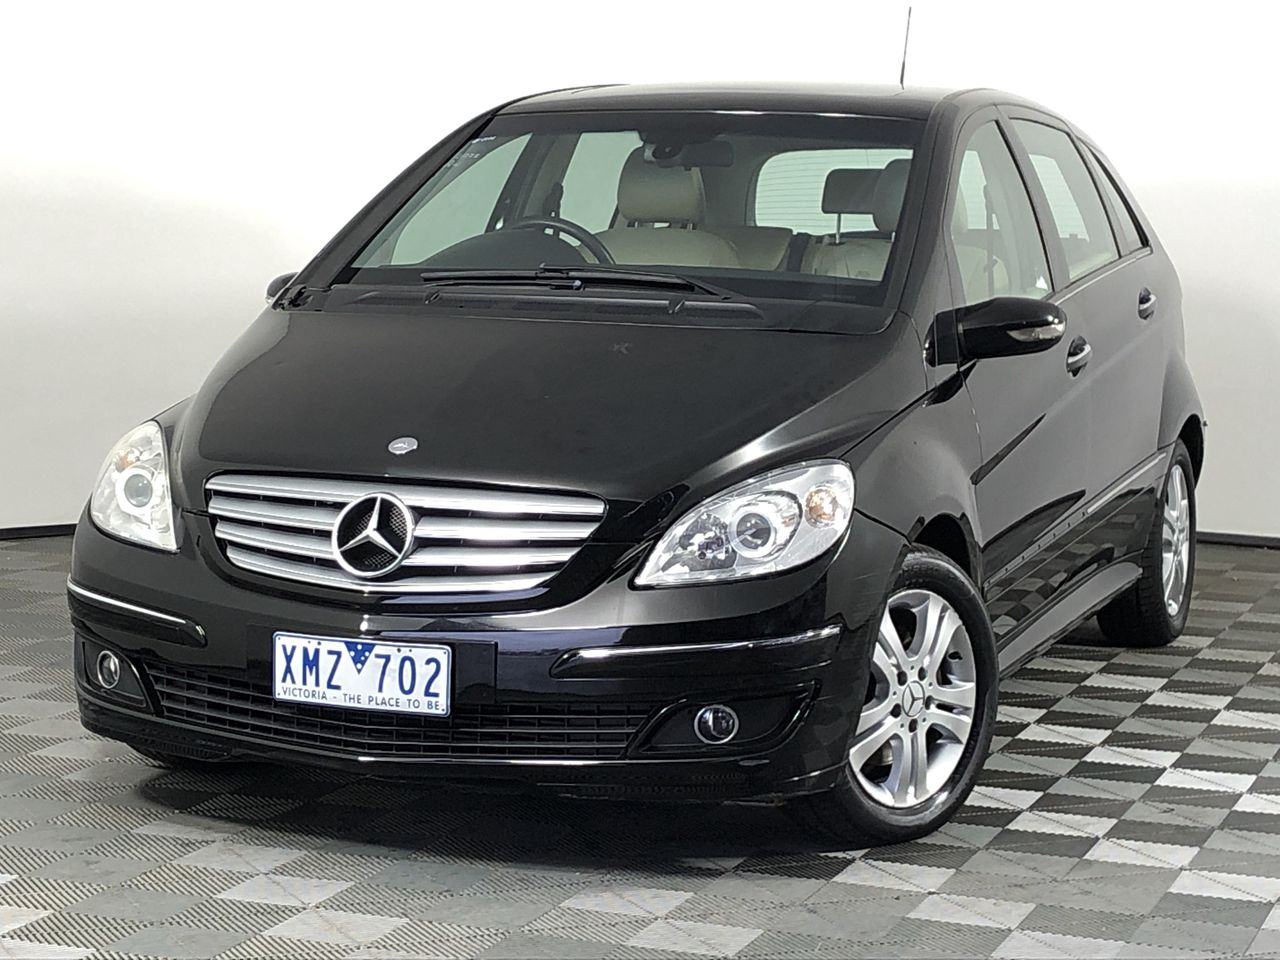 2006 Mercedes Benz B200 Turbo W245 CVT Hatchback